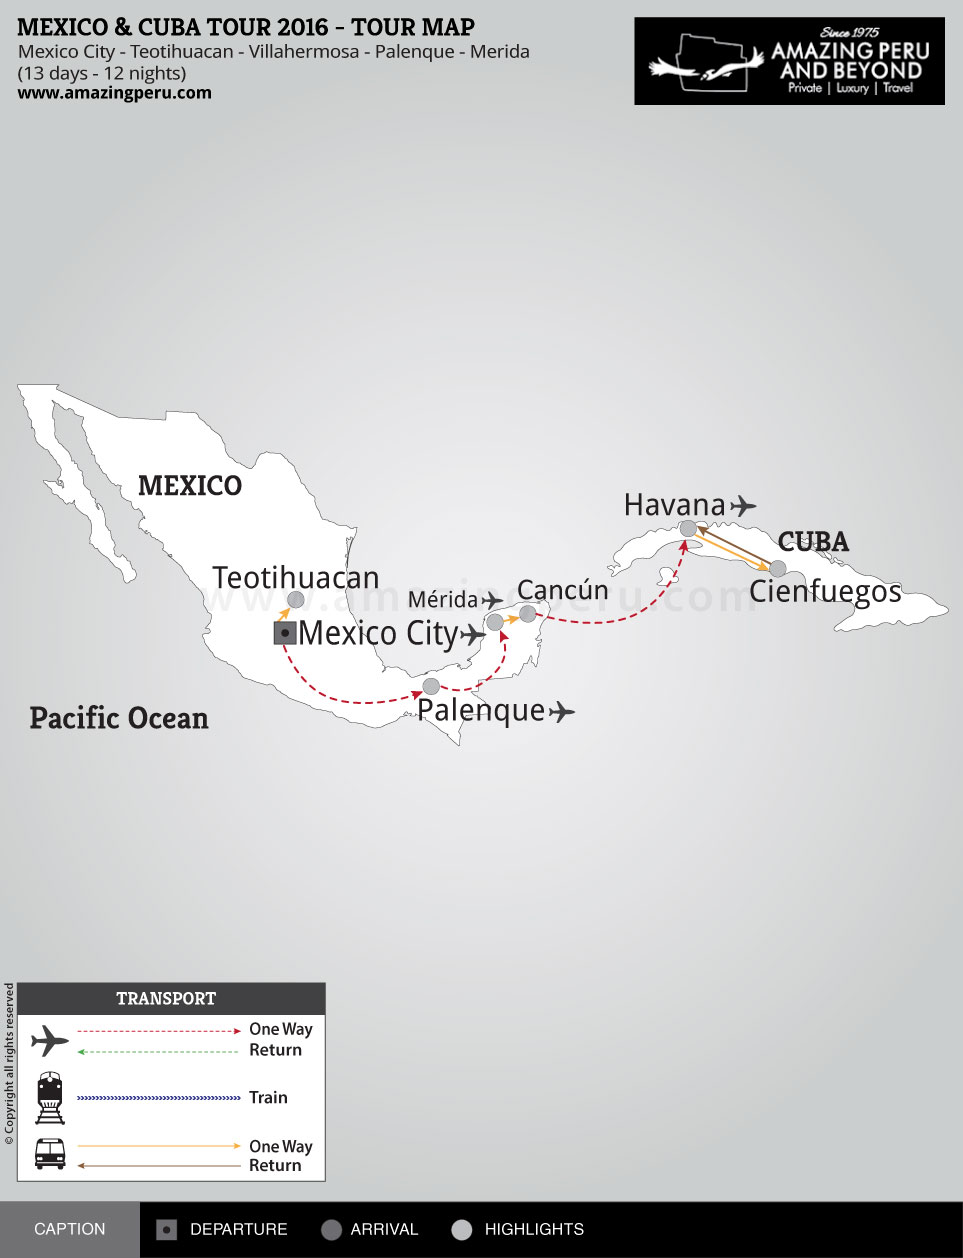 Mexico & Cuba Tour 2017 - 13 days / 12 nights.